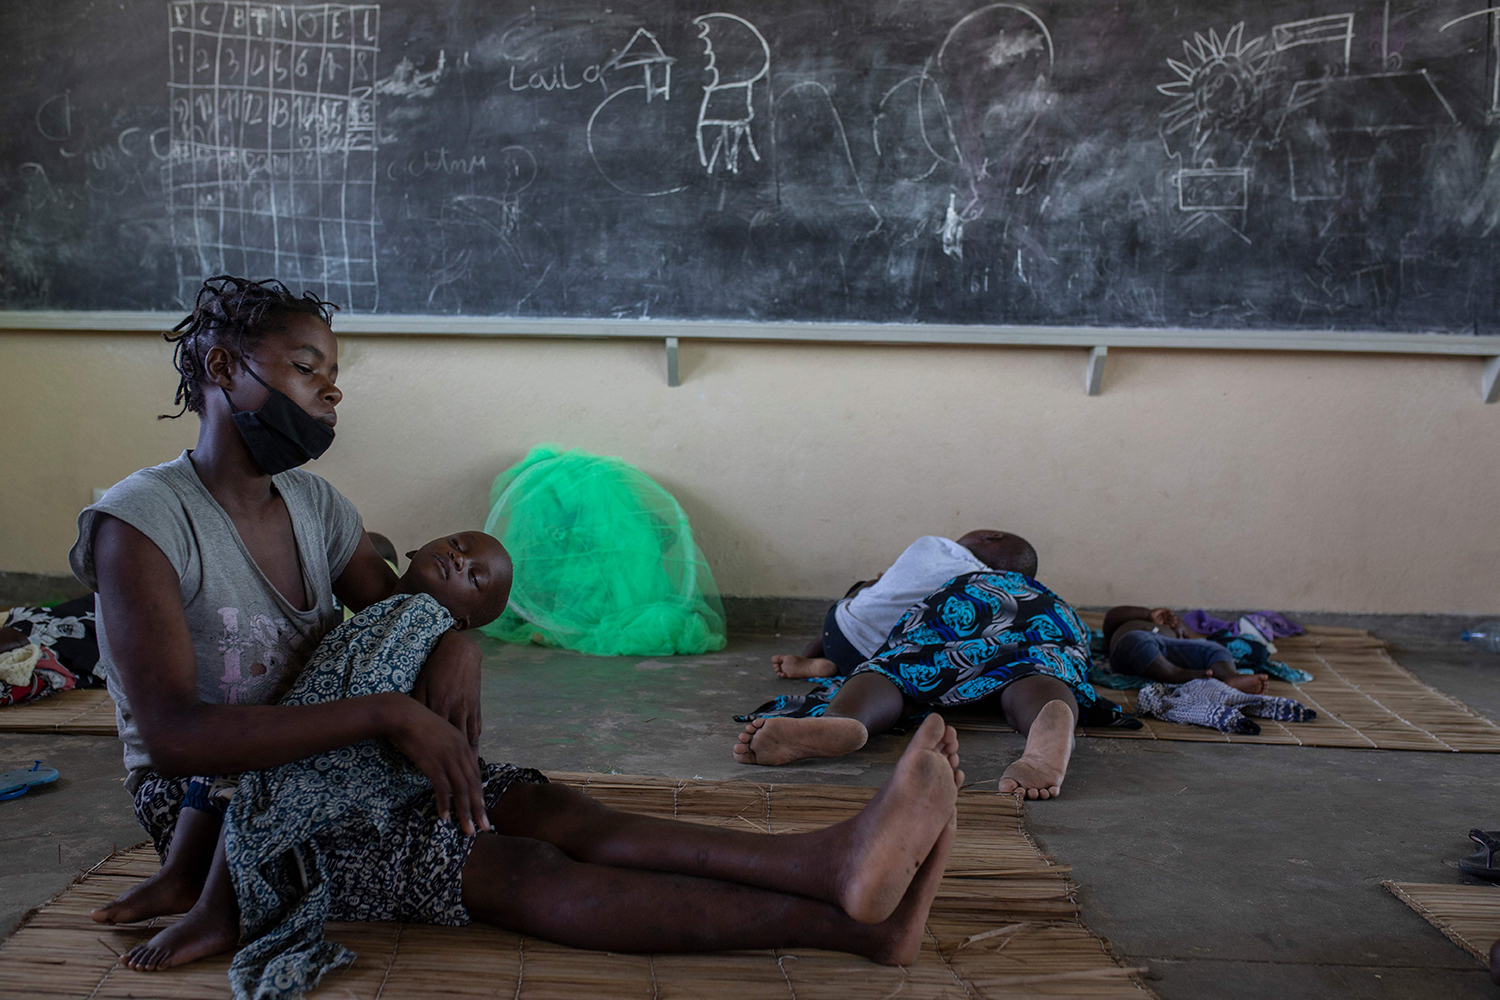 A woman and child take shelter inside a classroom in Beira, Mozambique, on Jan. 27 after being displaced by flooding caused by Cyclone Eloise. ALFREDO ZUNIGA/AFP via Getty Images